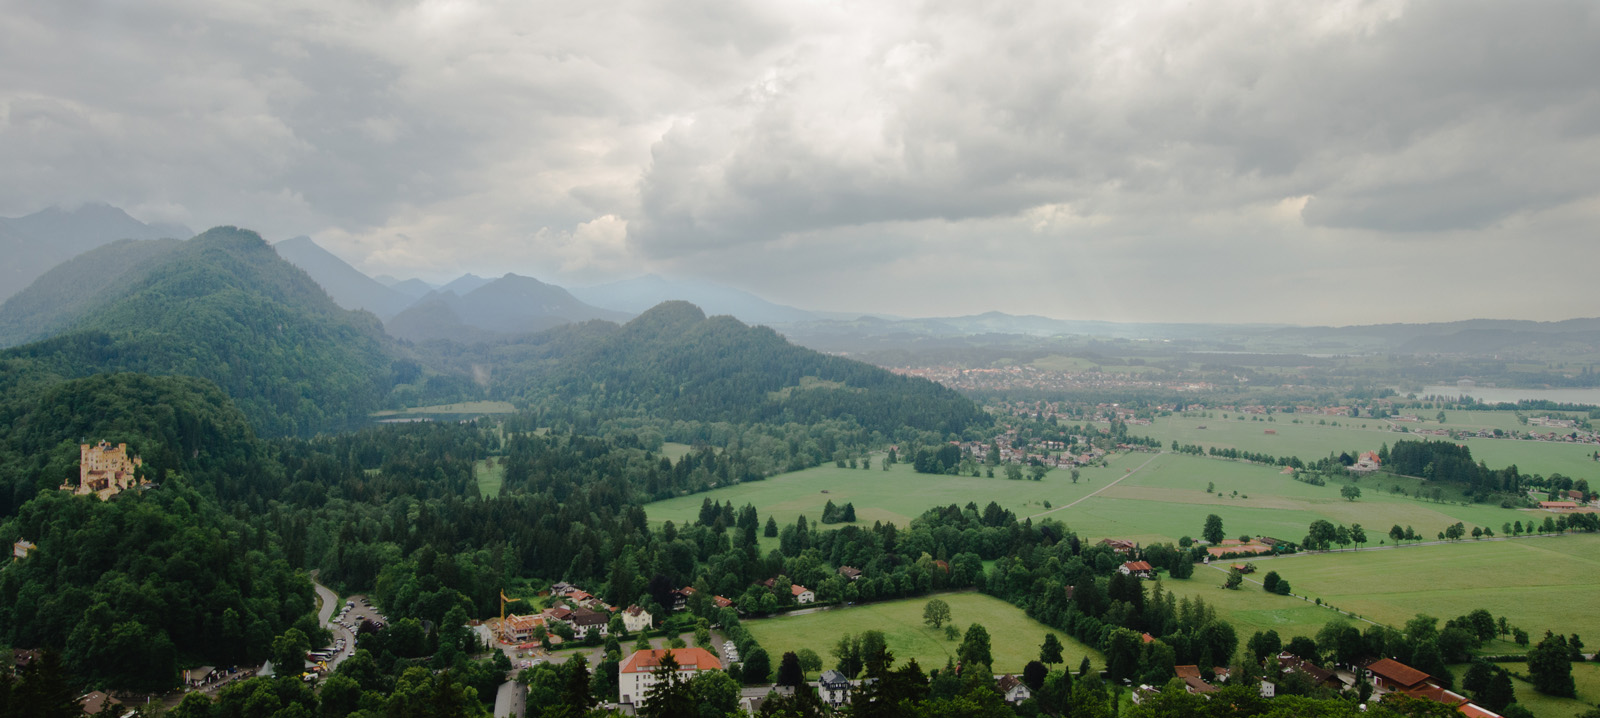 A stormy day in the Alpine foothills in western Bavaria. This view, from a balcony of the Schlöss Neuschwanstein, features the nearby Schloss Hohenschwangau at the edge of the mountains.